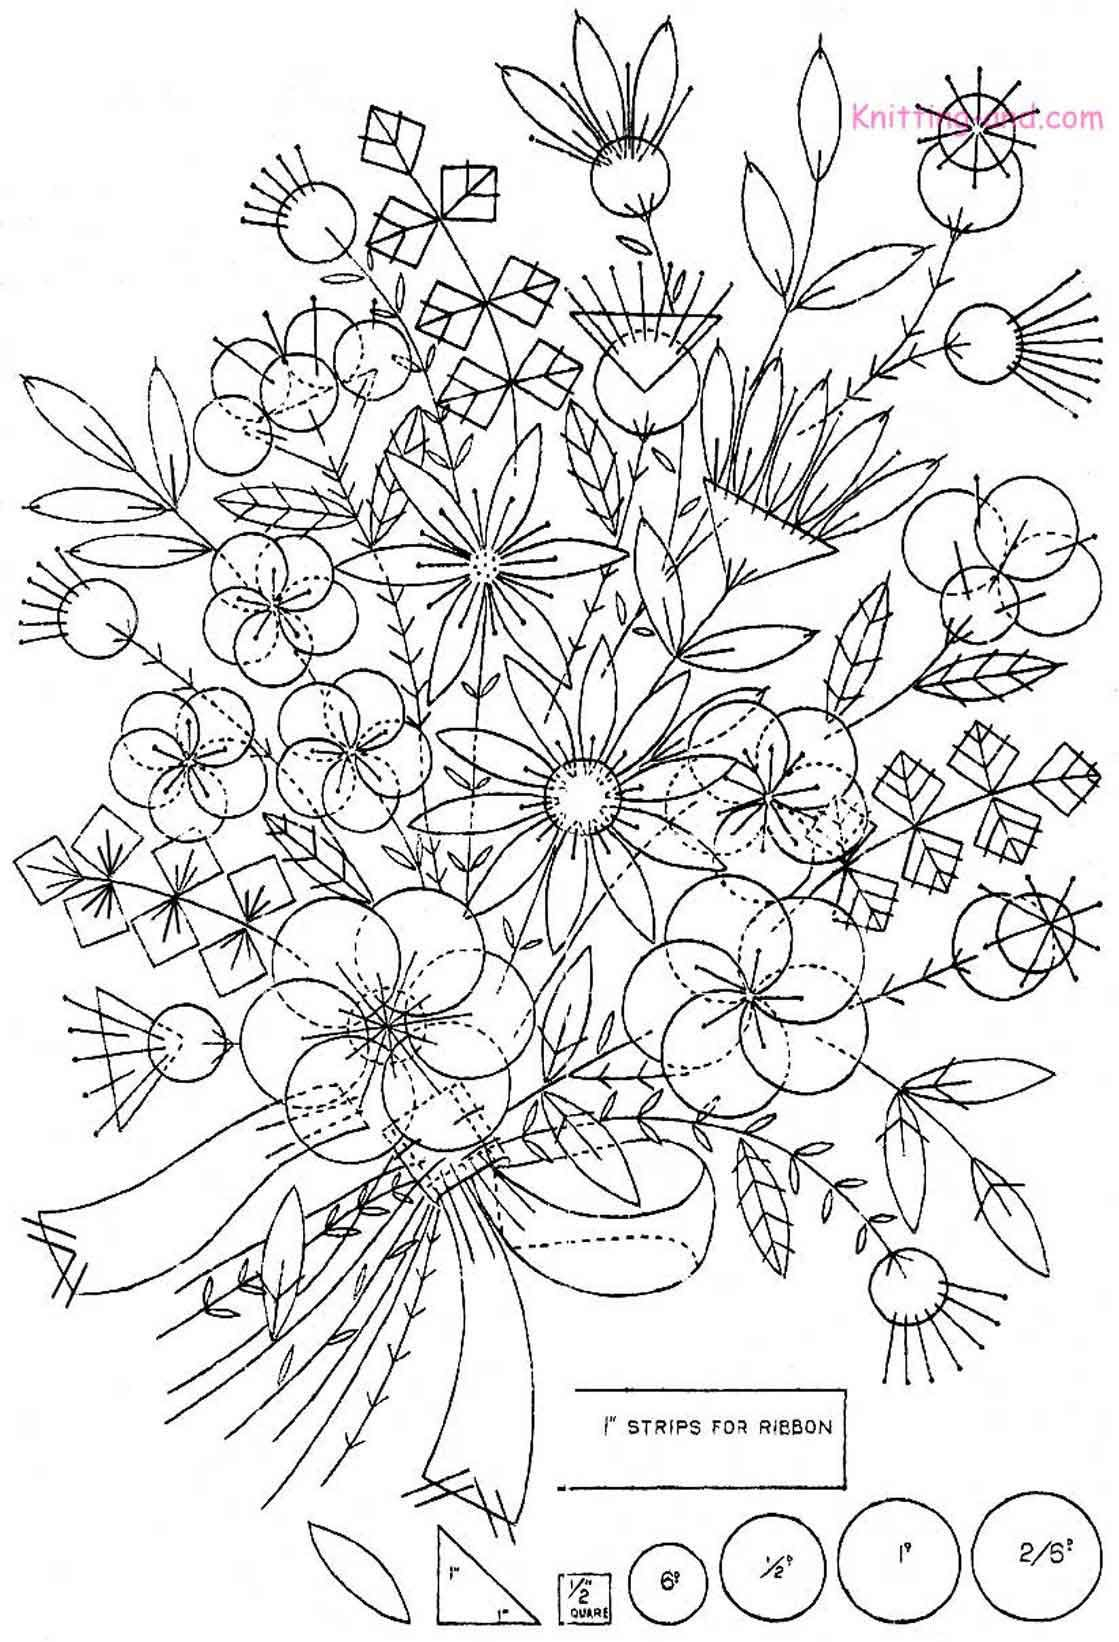 Hand Embroidery Alphabet Patterns Free Free Printable Embroidery Patterns Hand 108 Images In